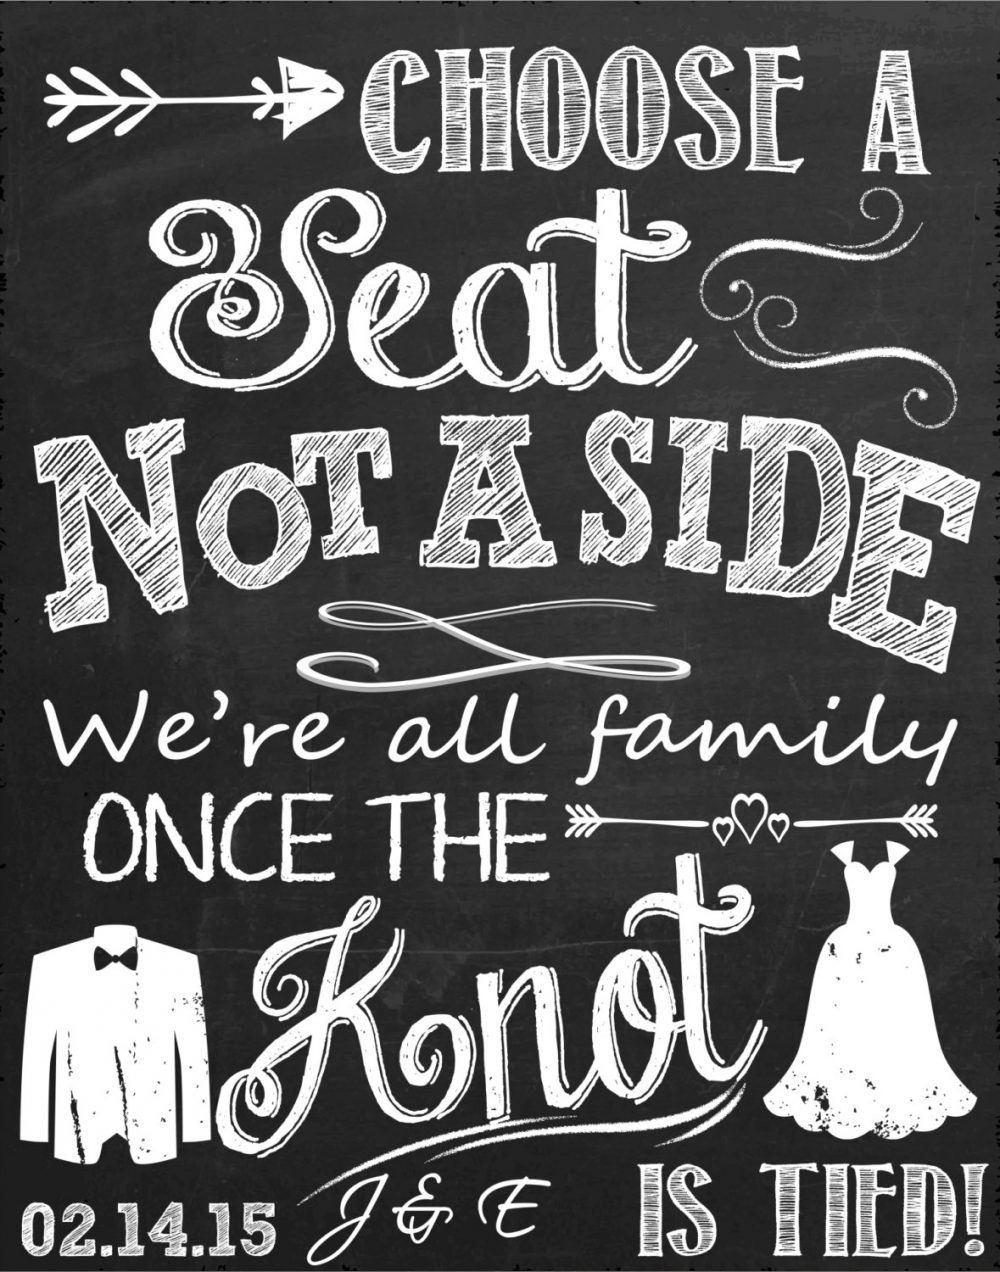 Choose A Seat Not Side Sign, Seating Sign Ideas For Wedding, Family Once The Knot Is Tied Wedding Chalkboard Style Sgnwed17